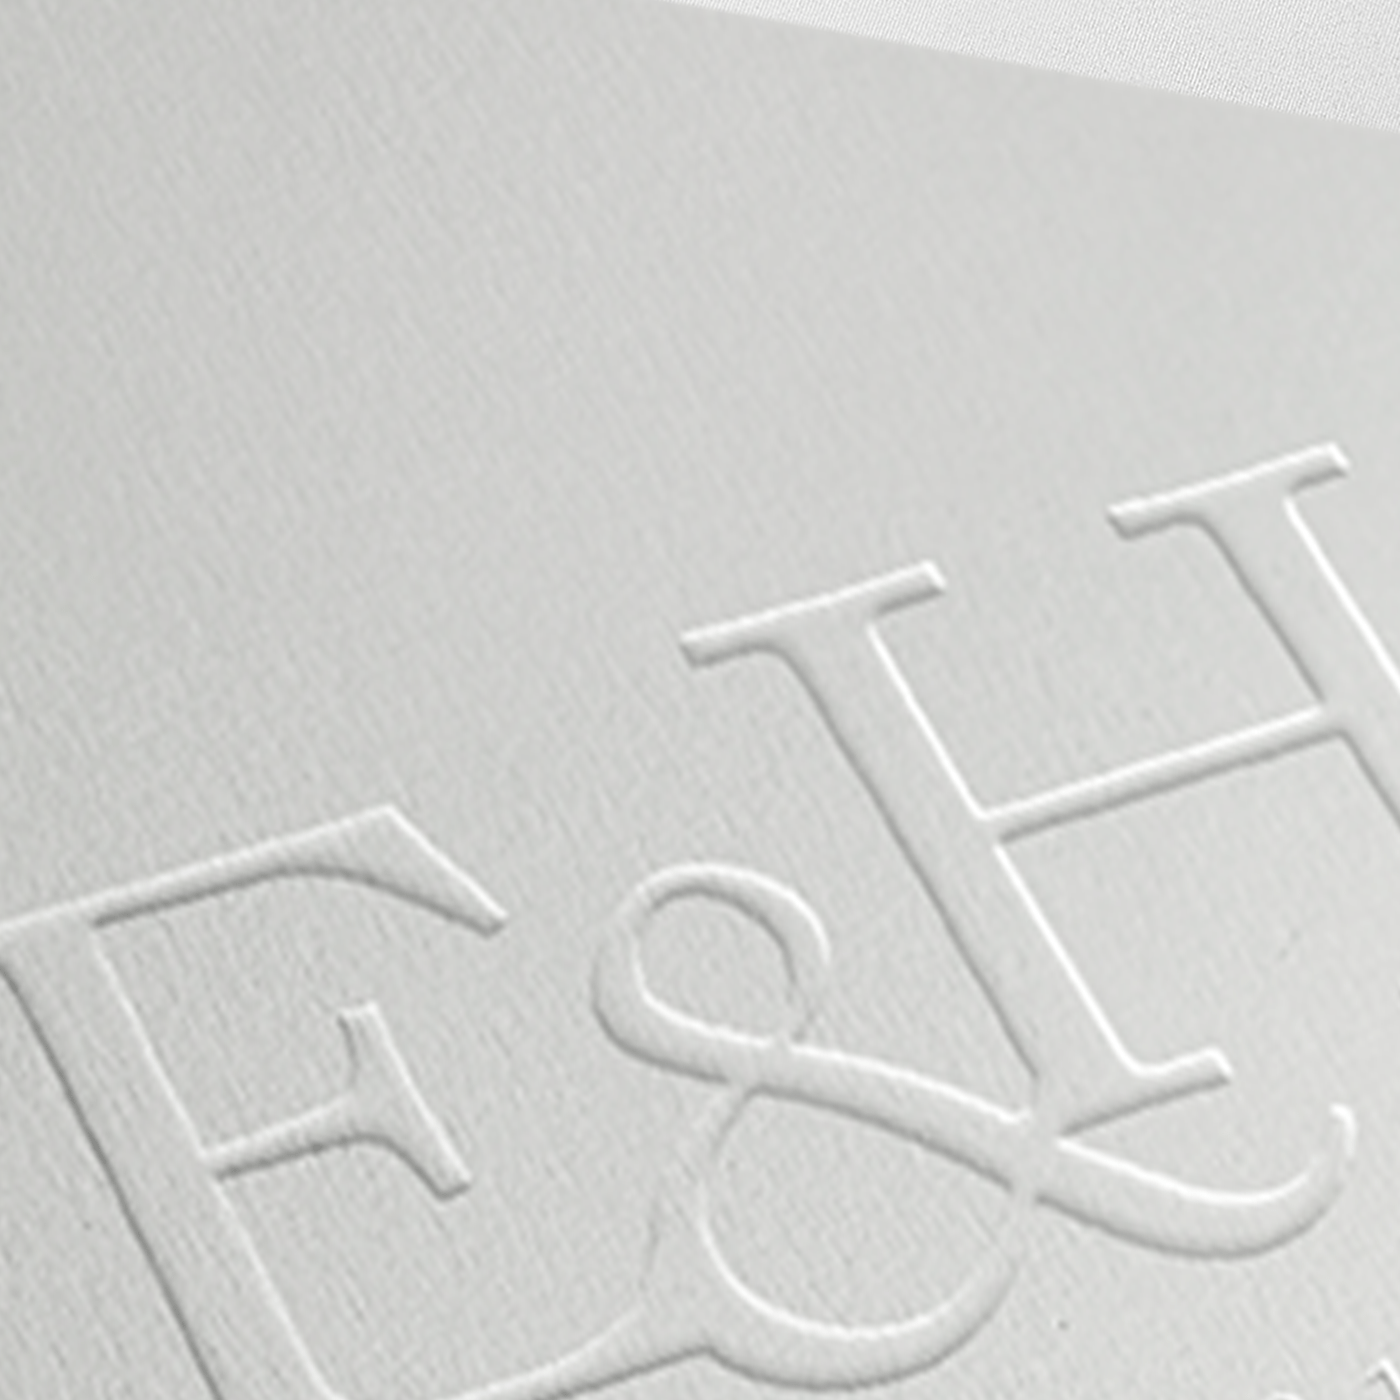 White embossed wedding monogram with two initials E ampersand H interlinked, and text est 2017 directly beneath wedding monogram